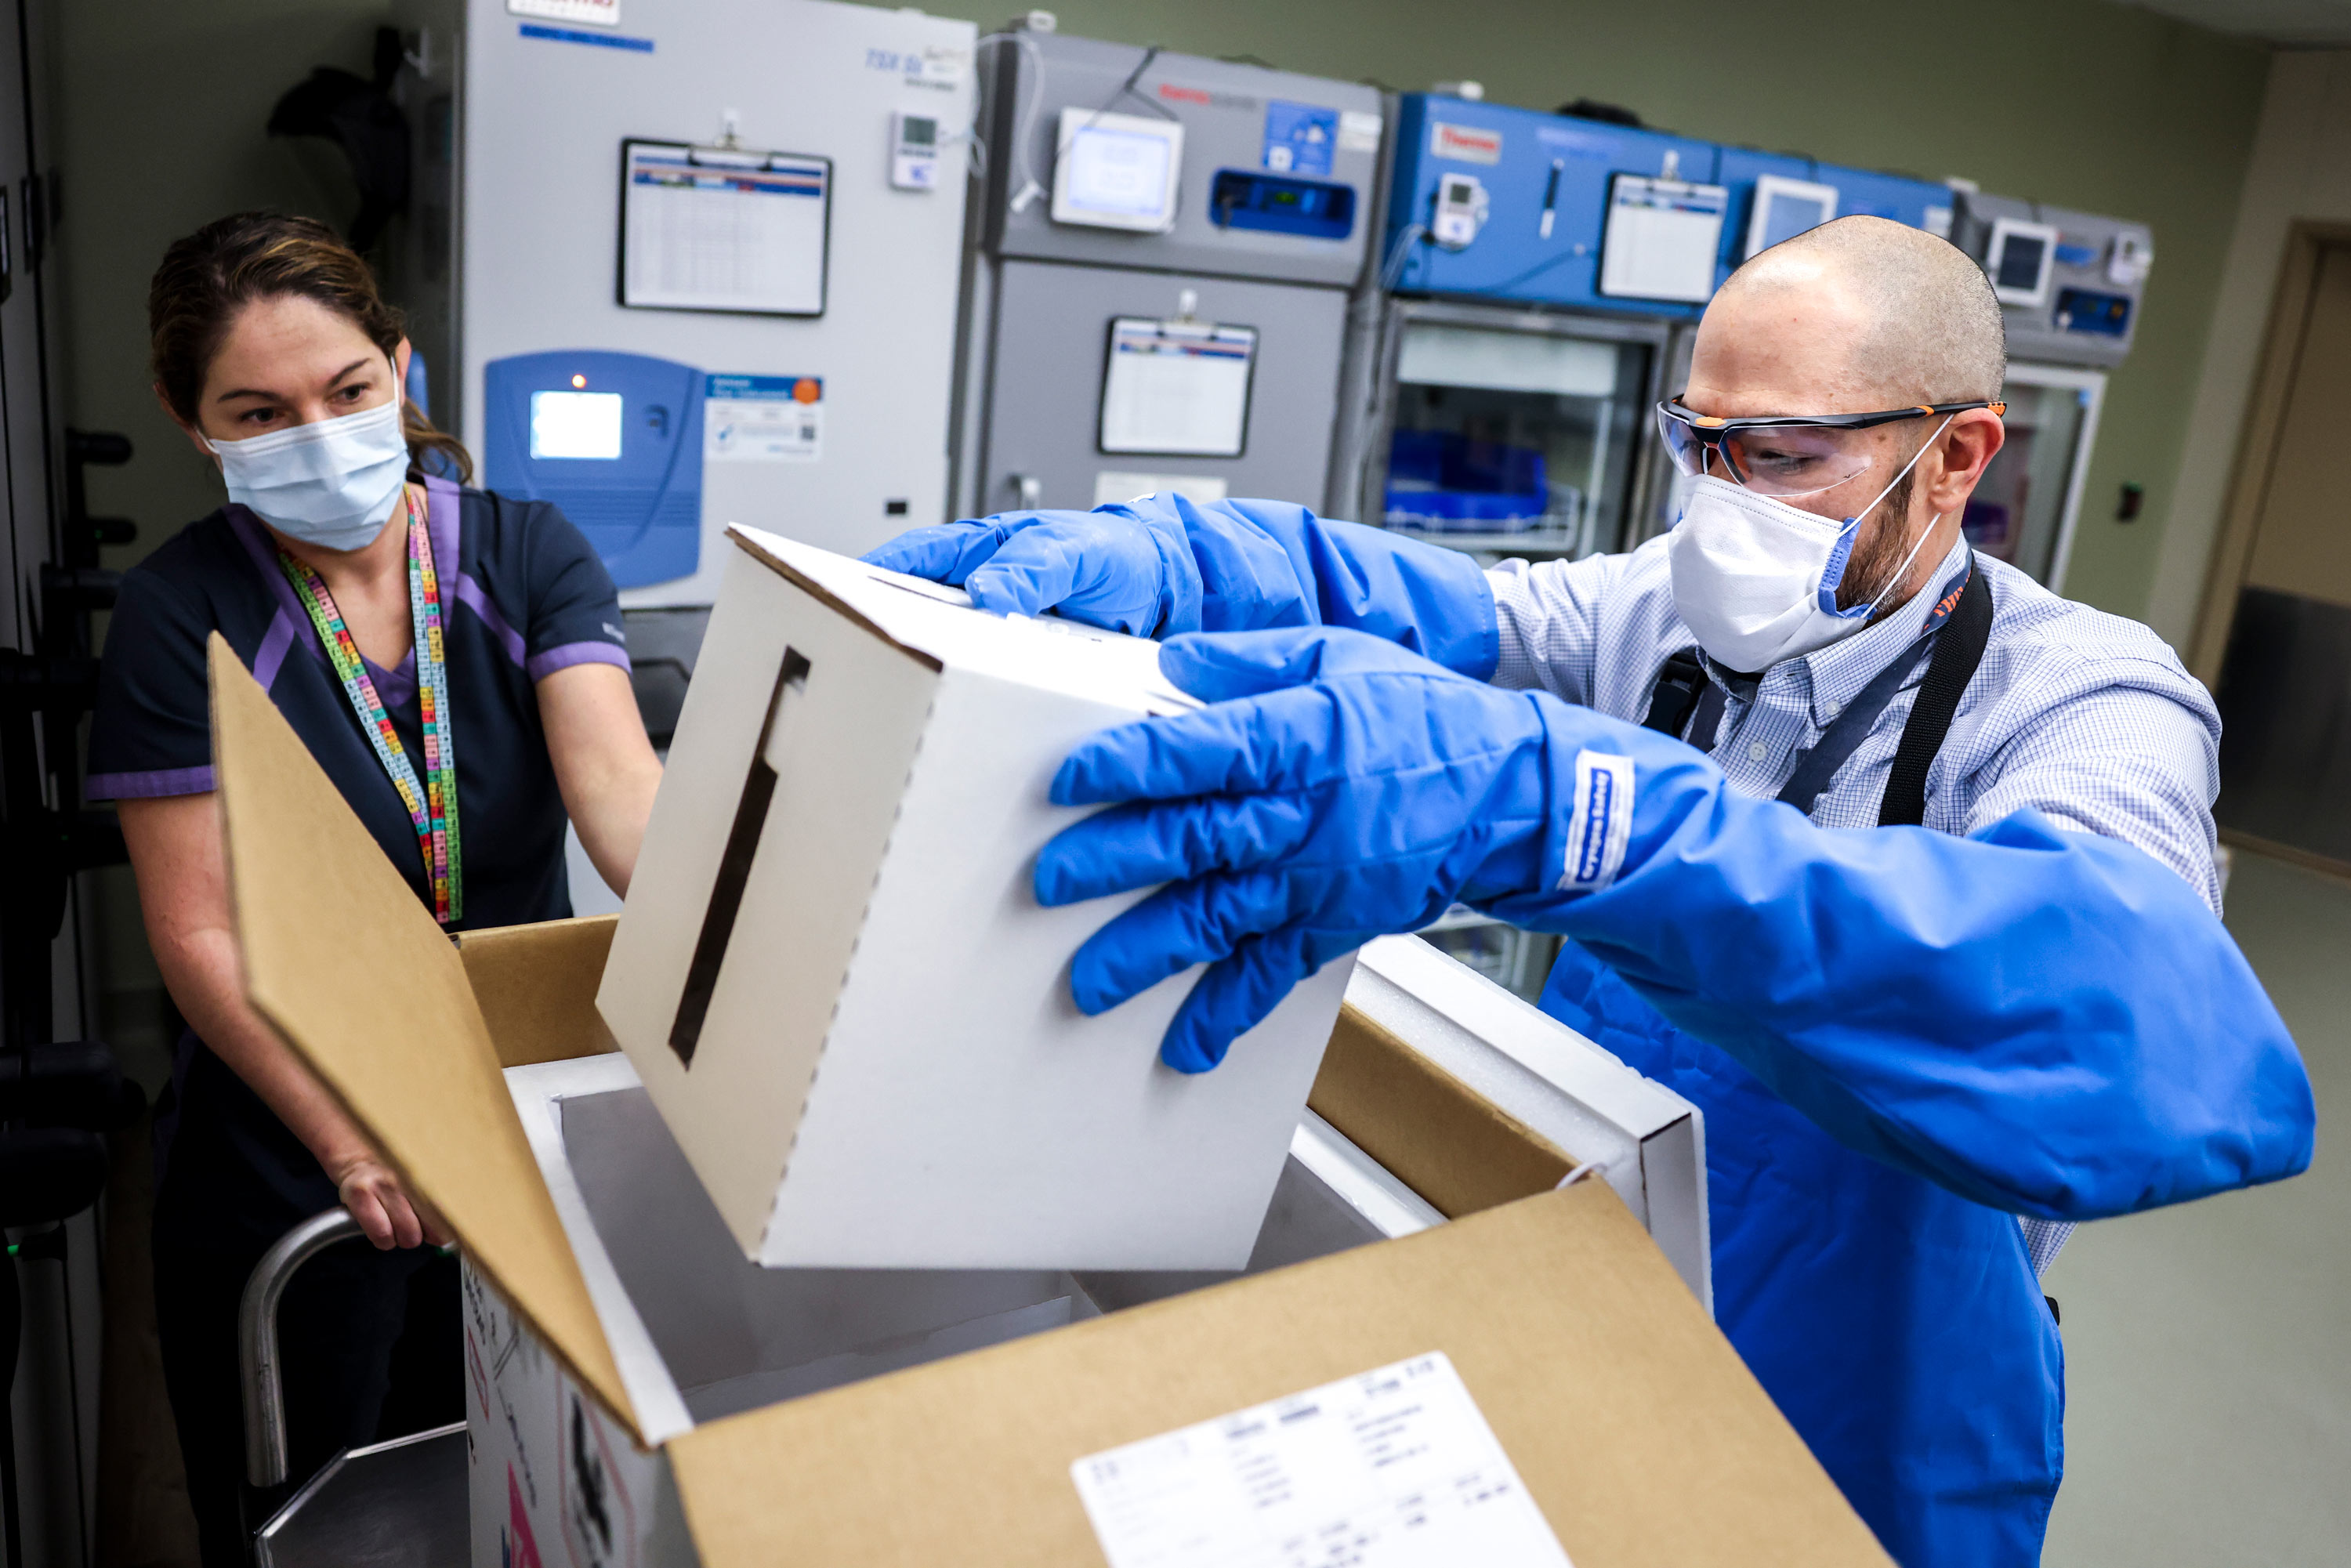 Rocky Mountain Regional VA Medical Center associate chief of pharmacy operations Terrence Wong opens a box containing a shipment of the Pfizer-BioNTech COVID-19 vaccine on December 15, 2020 in Aurora, Colorado.